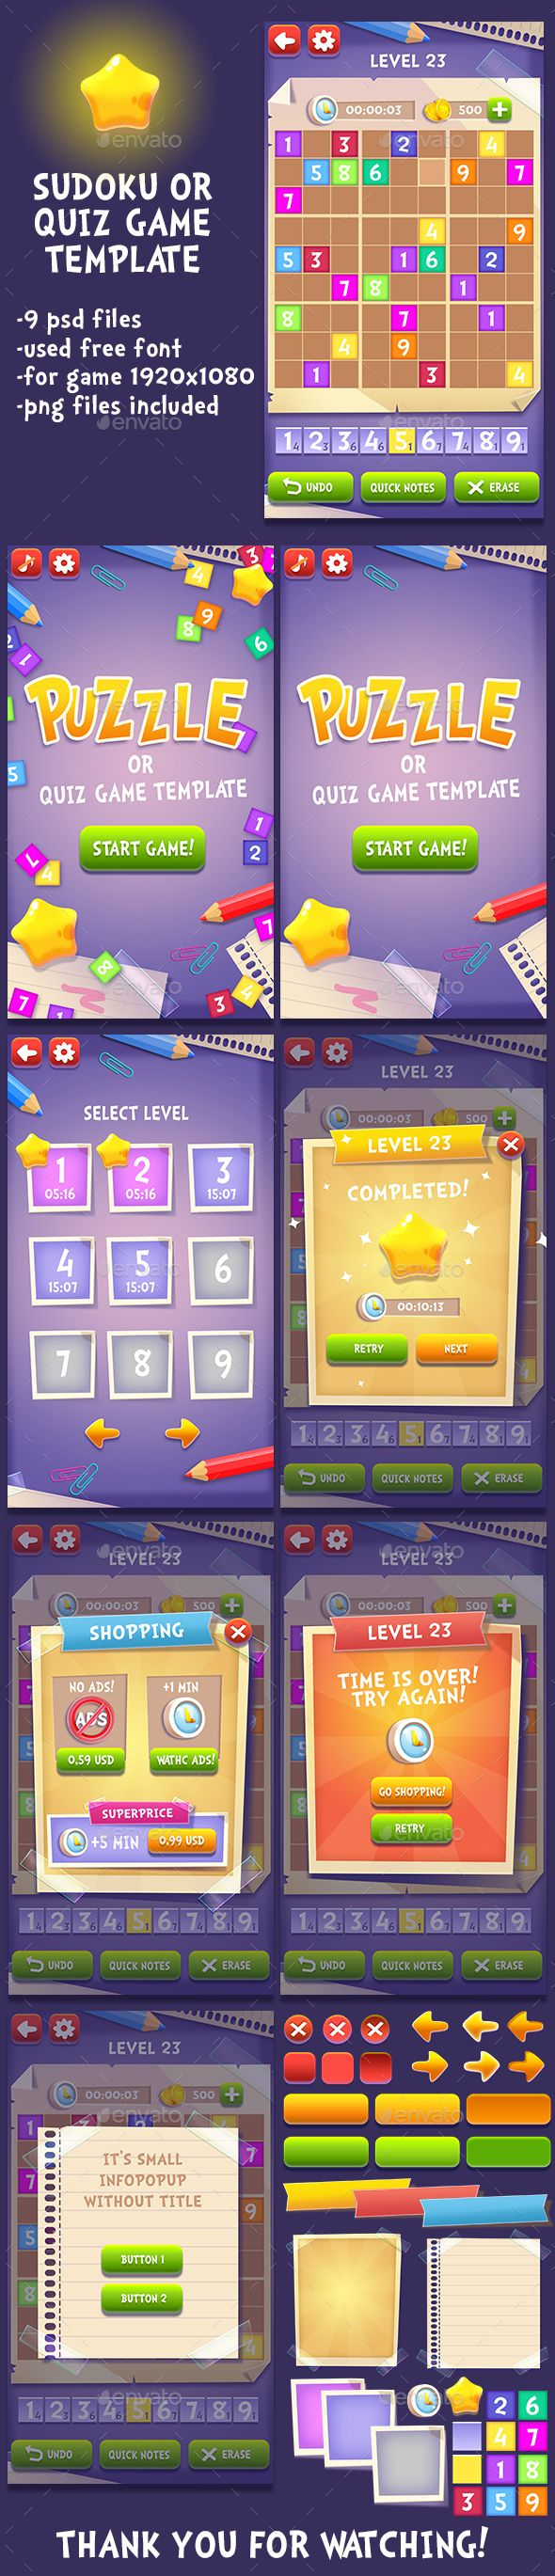 puzzle or quiz game template game kits game assets royalty free